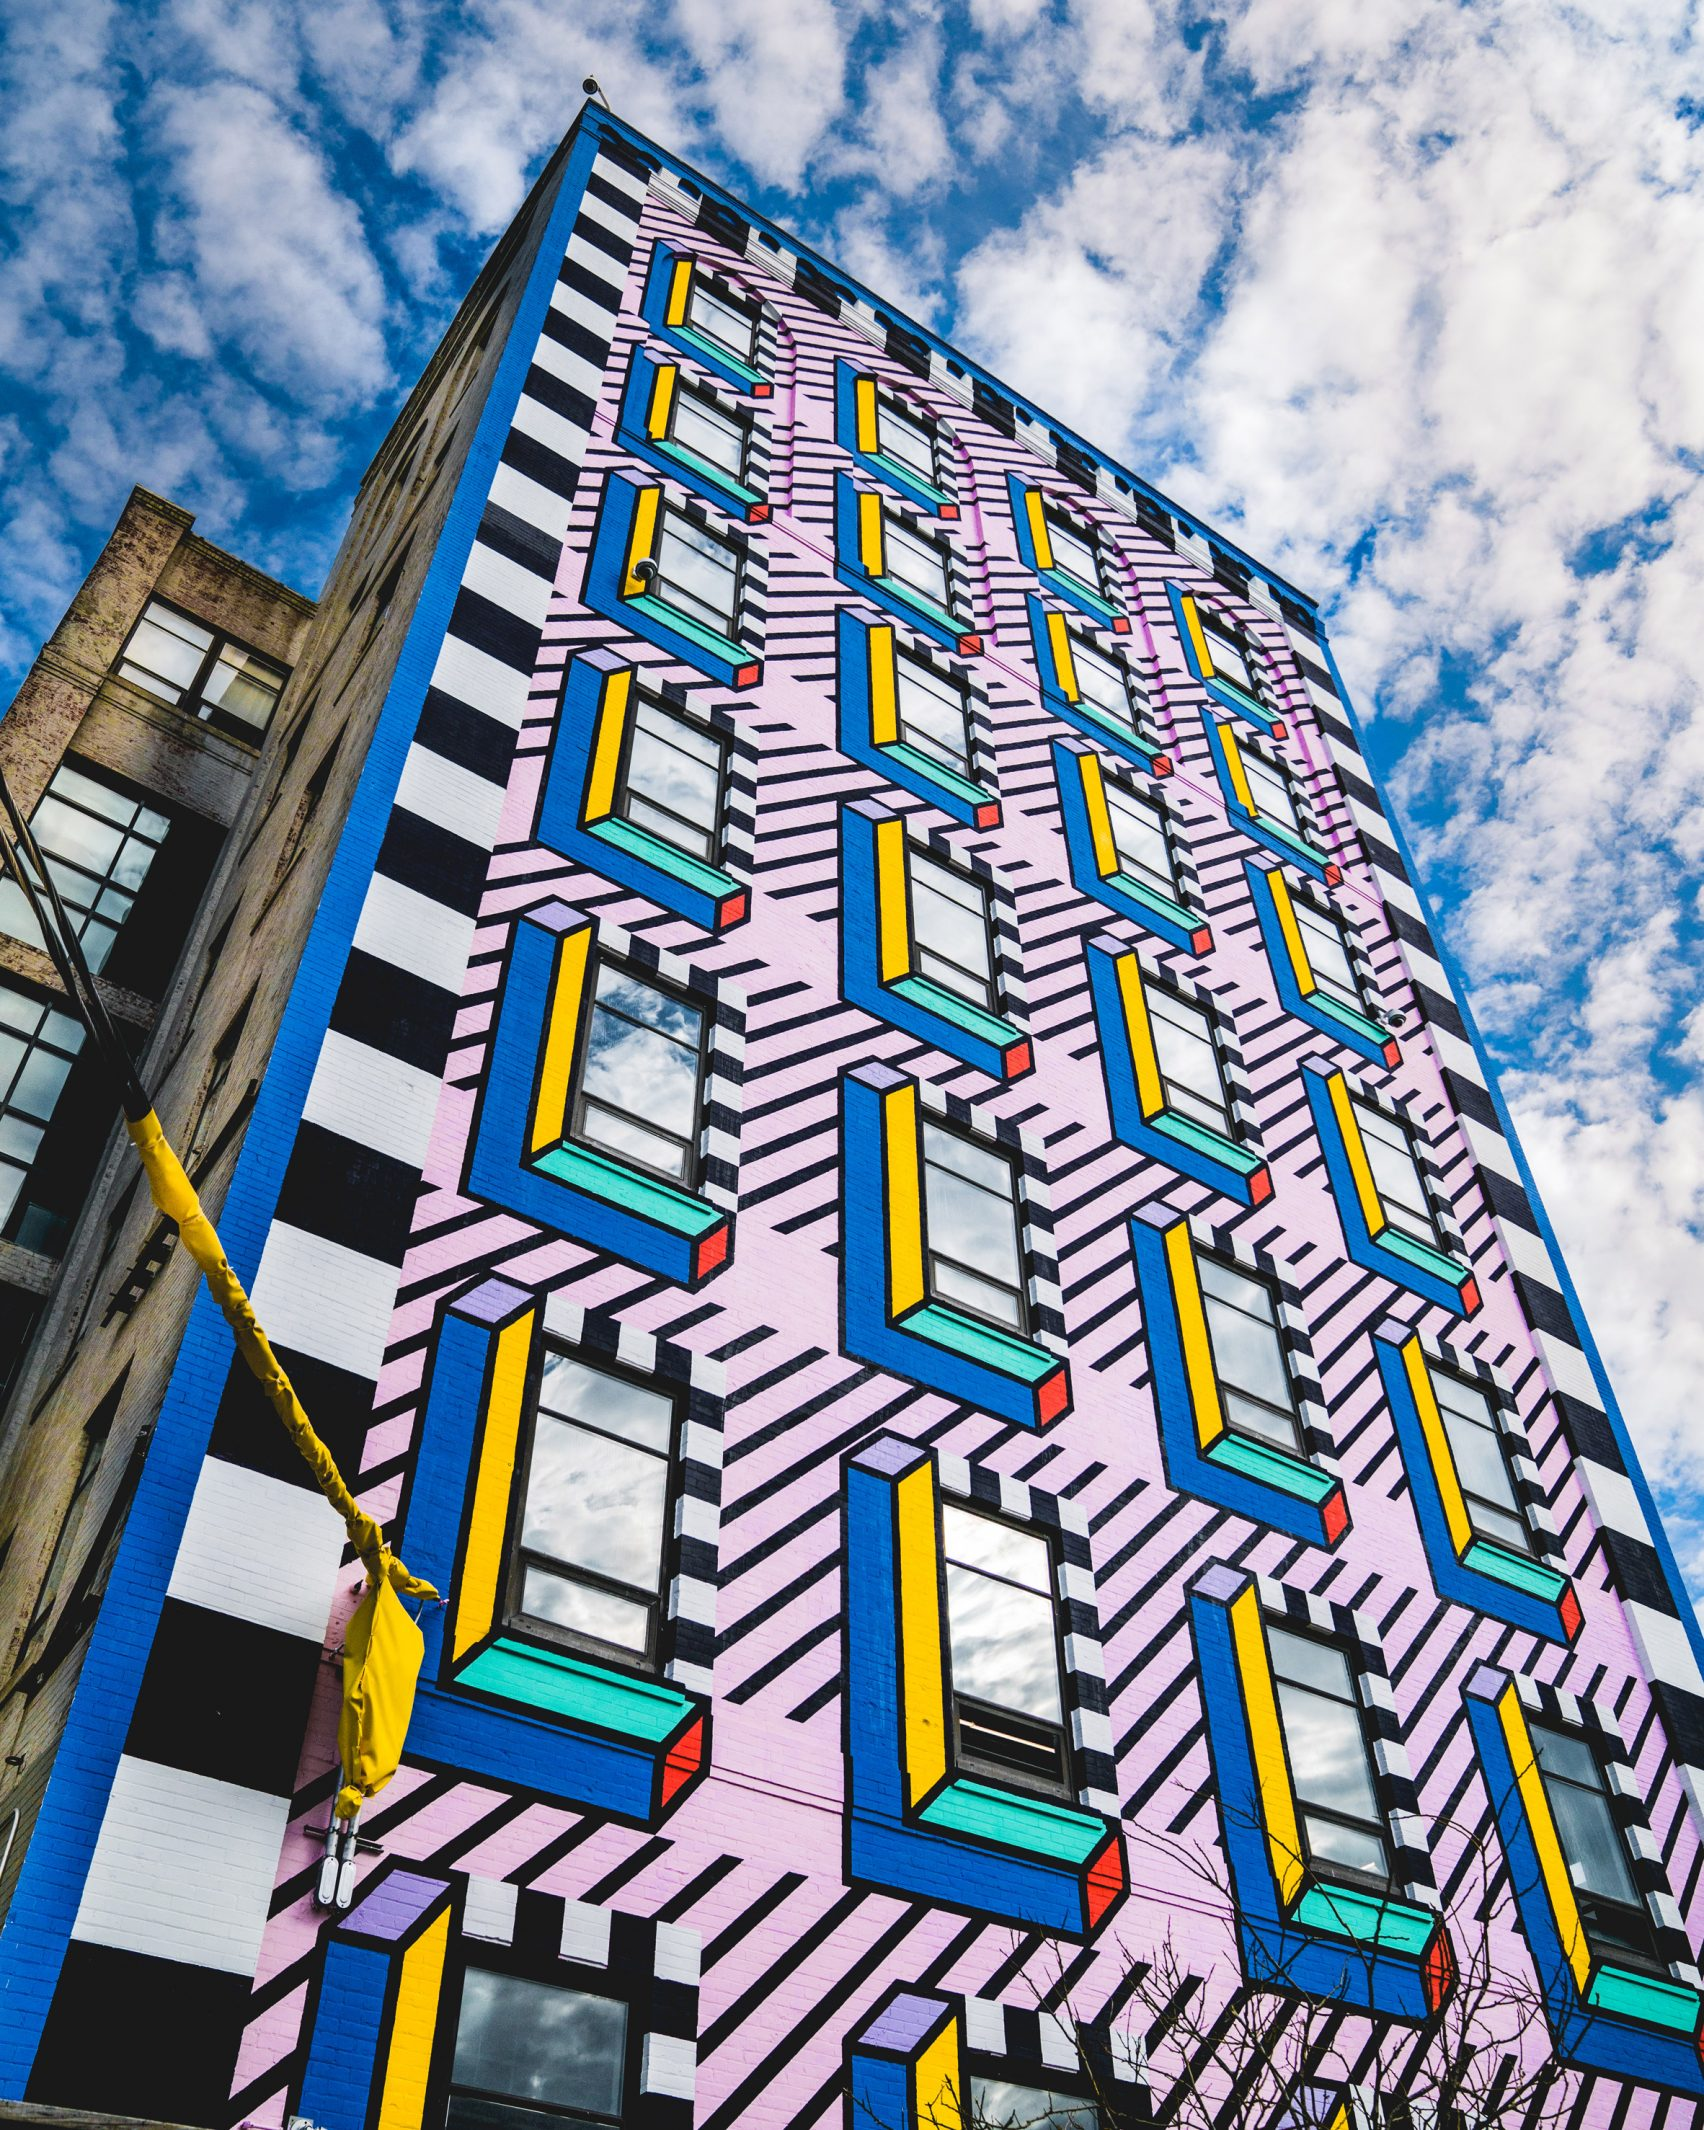 industry-city-camille-walala-wanteddesign-03